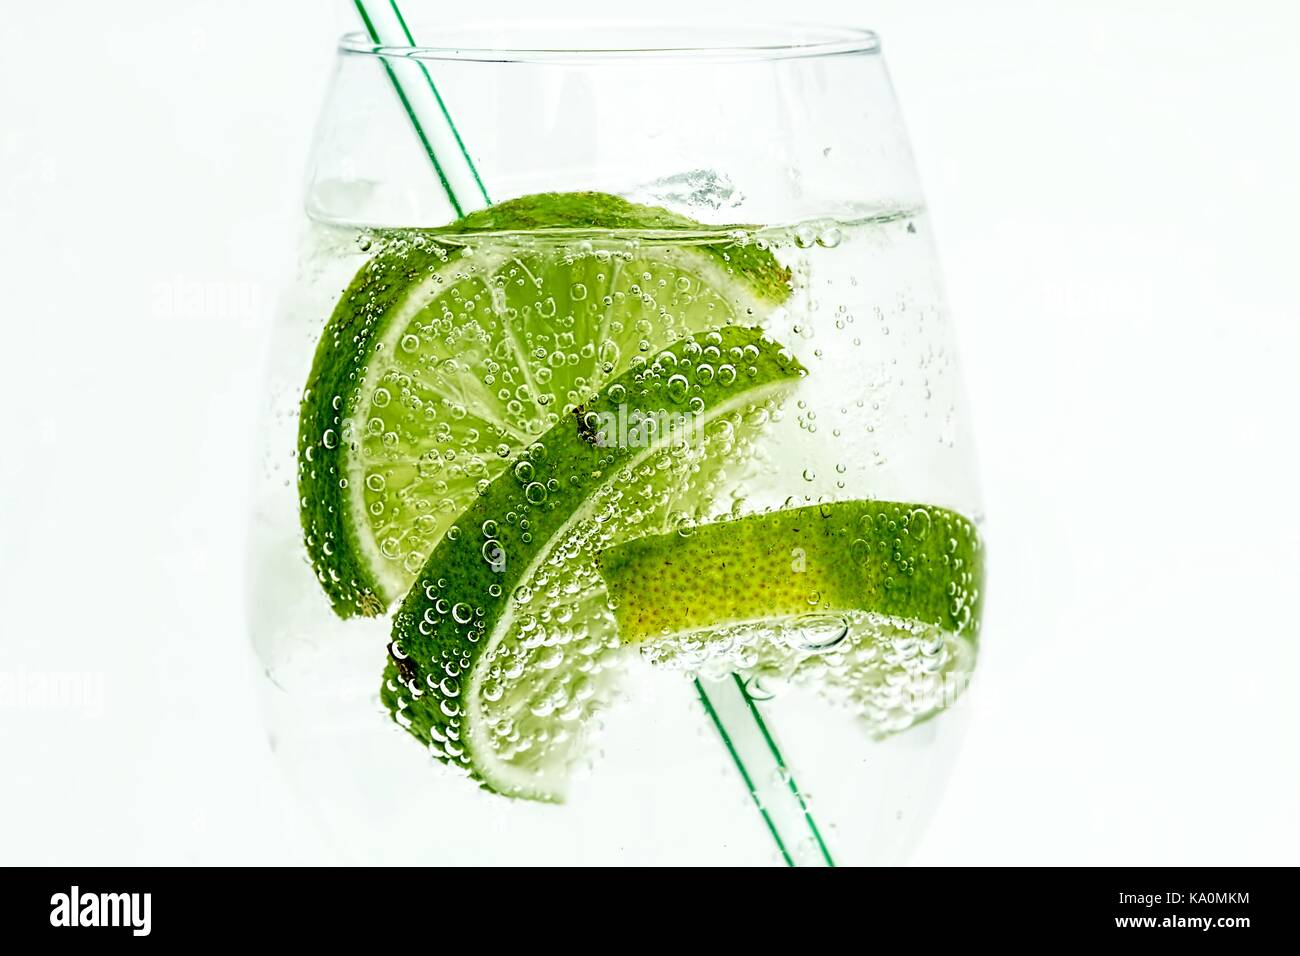 Tranches de lime dans l'eau gazeuse Photo Stock